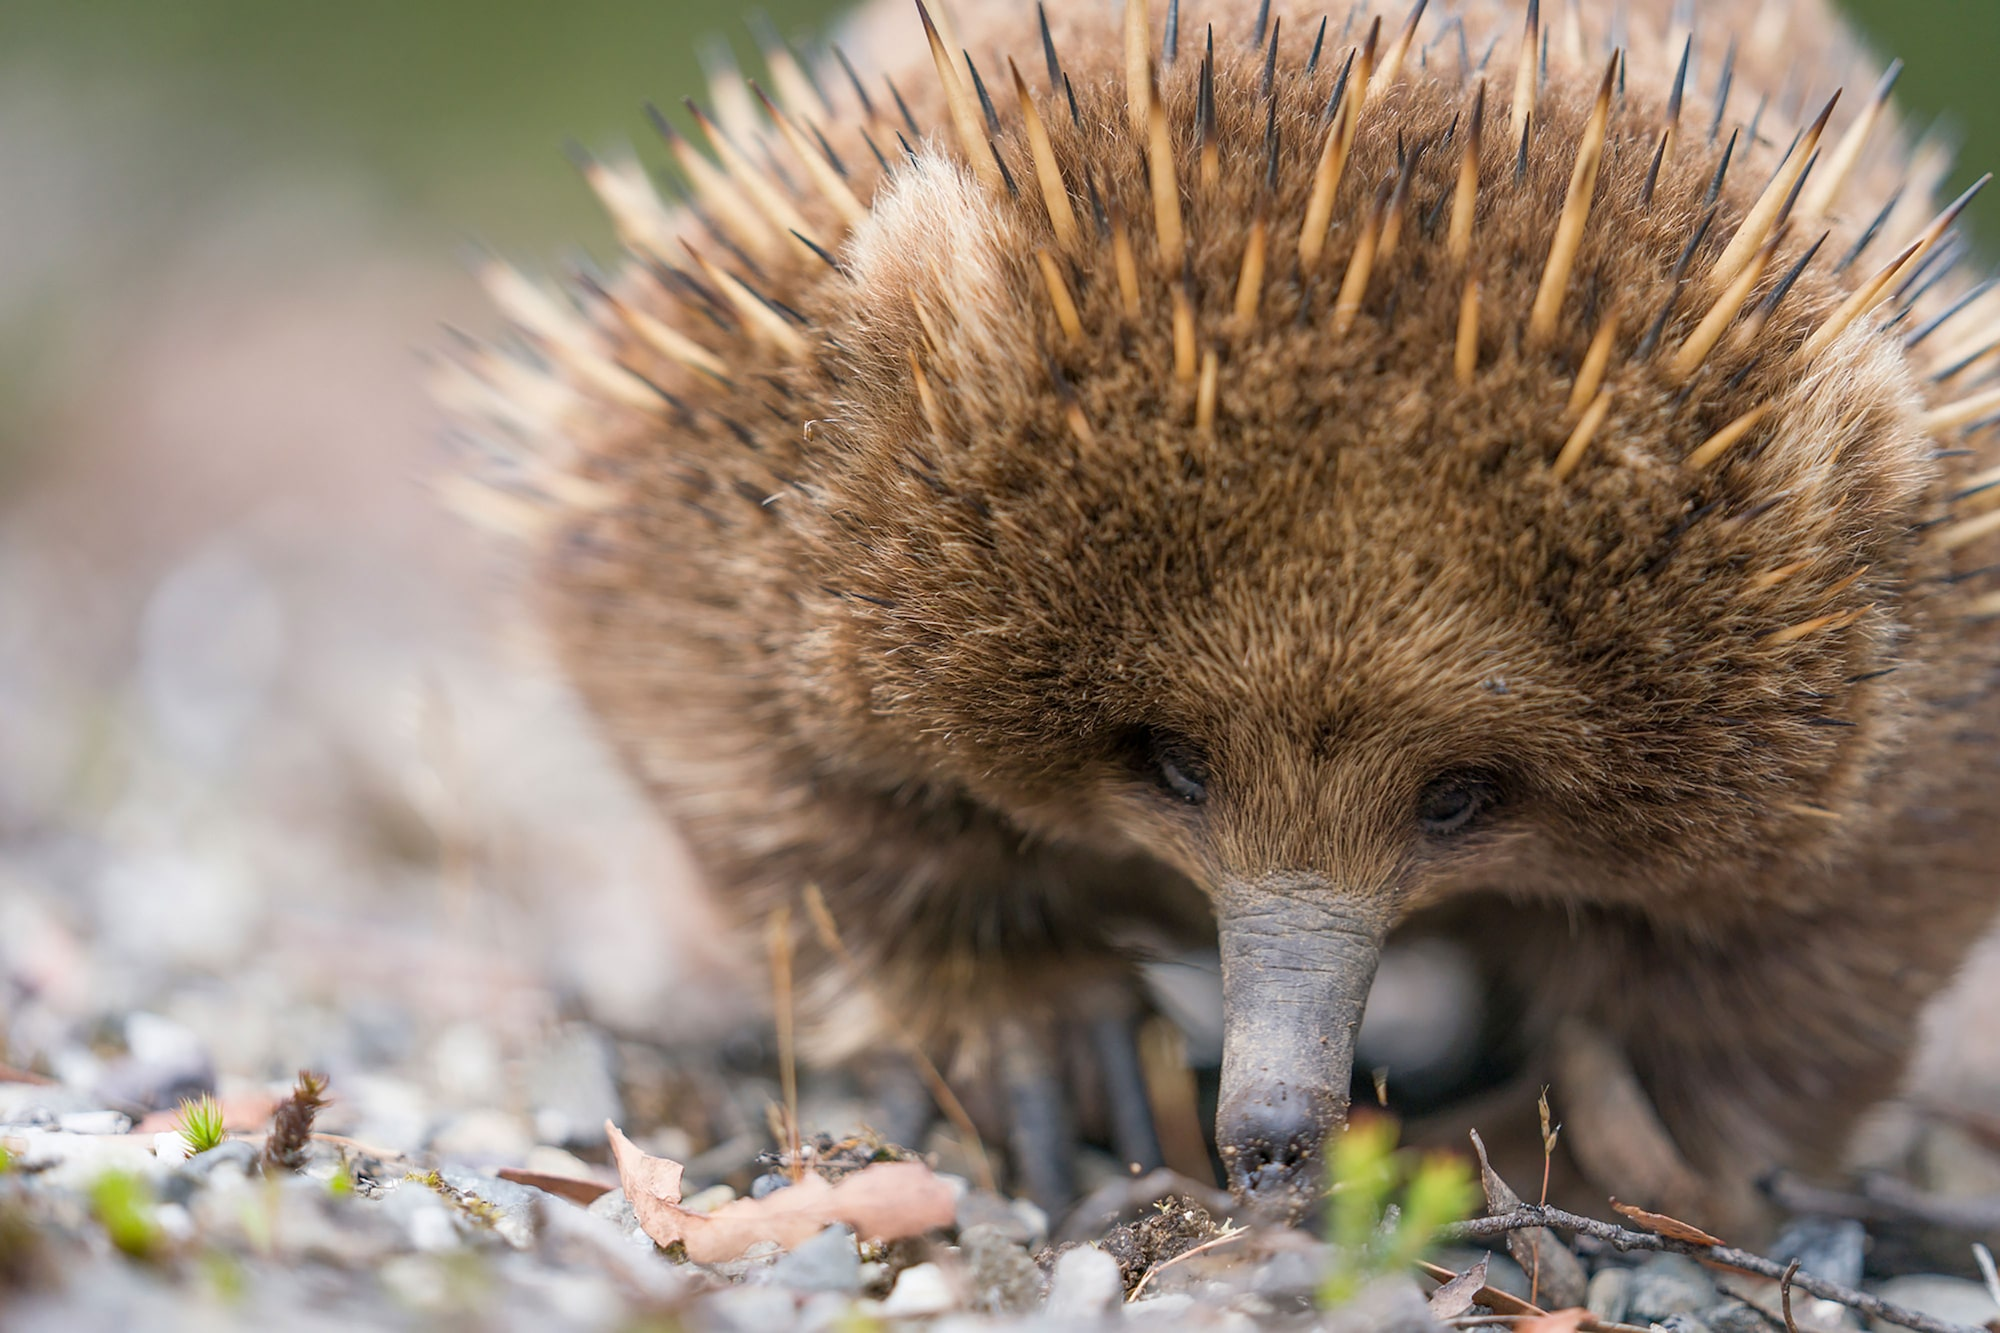 kaisa lappalainen sony alpha 9 echidna sniffs the ground for food